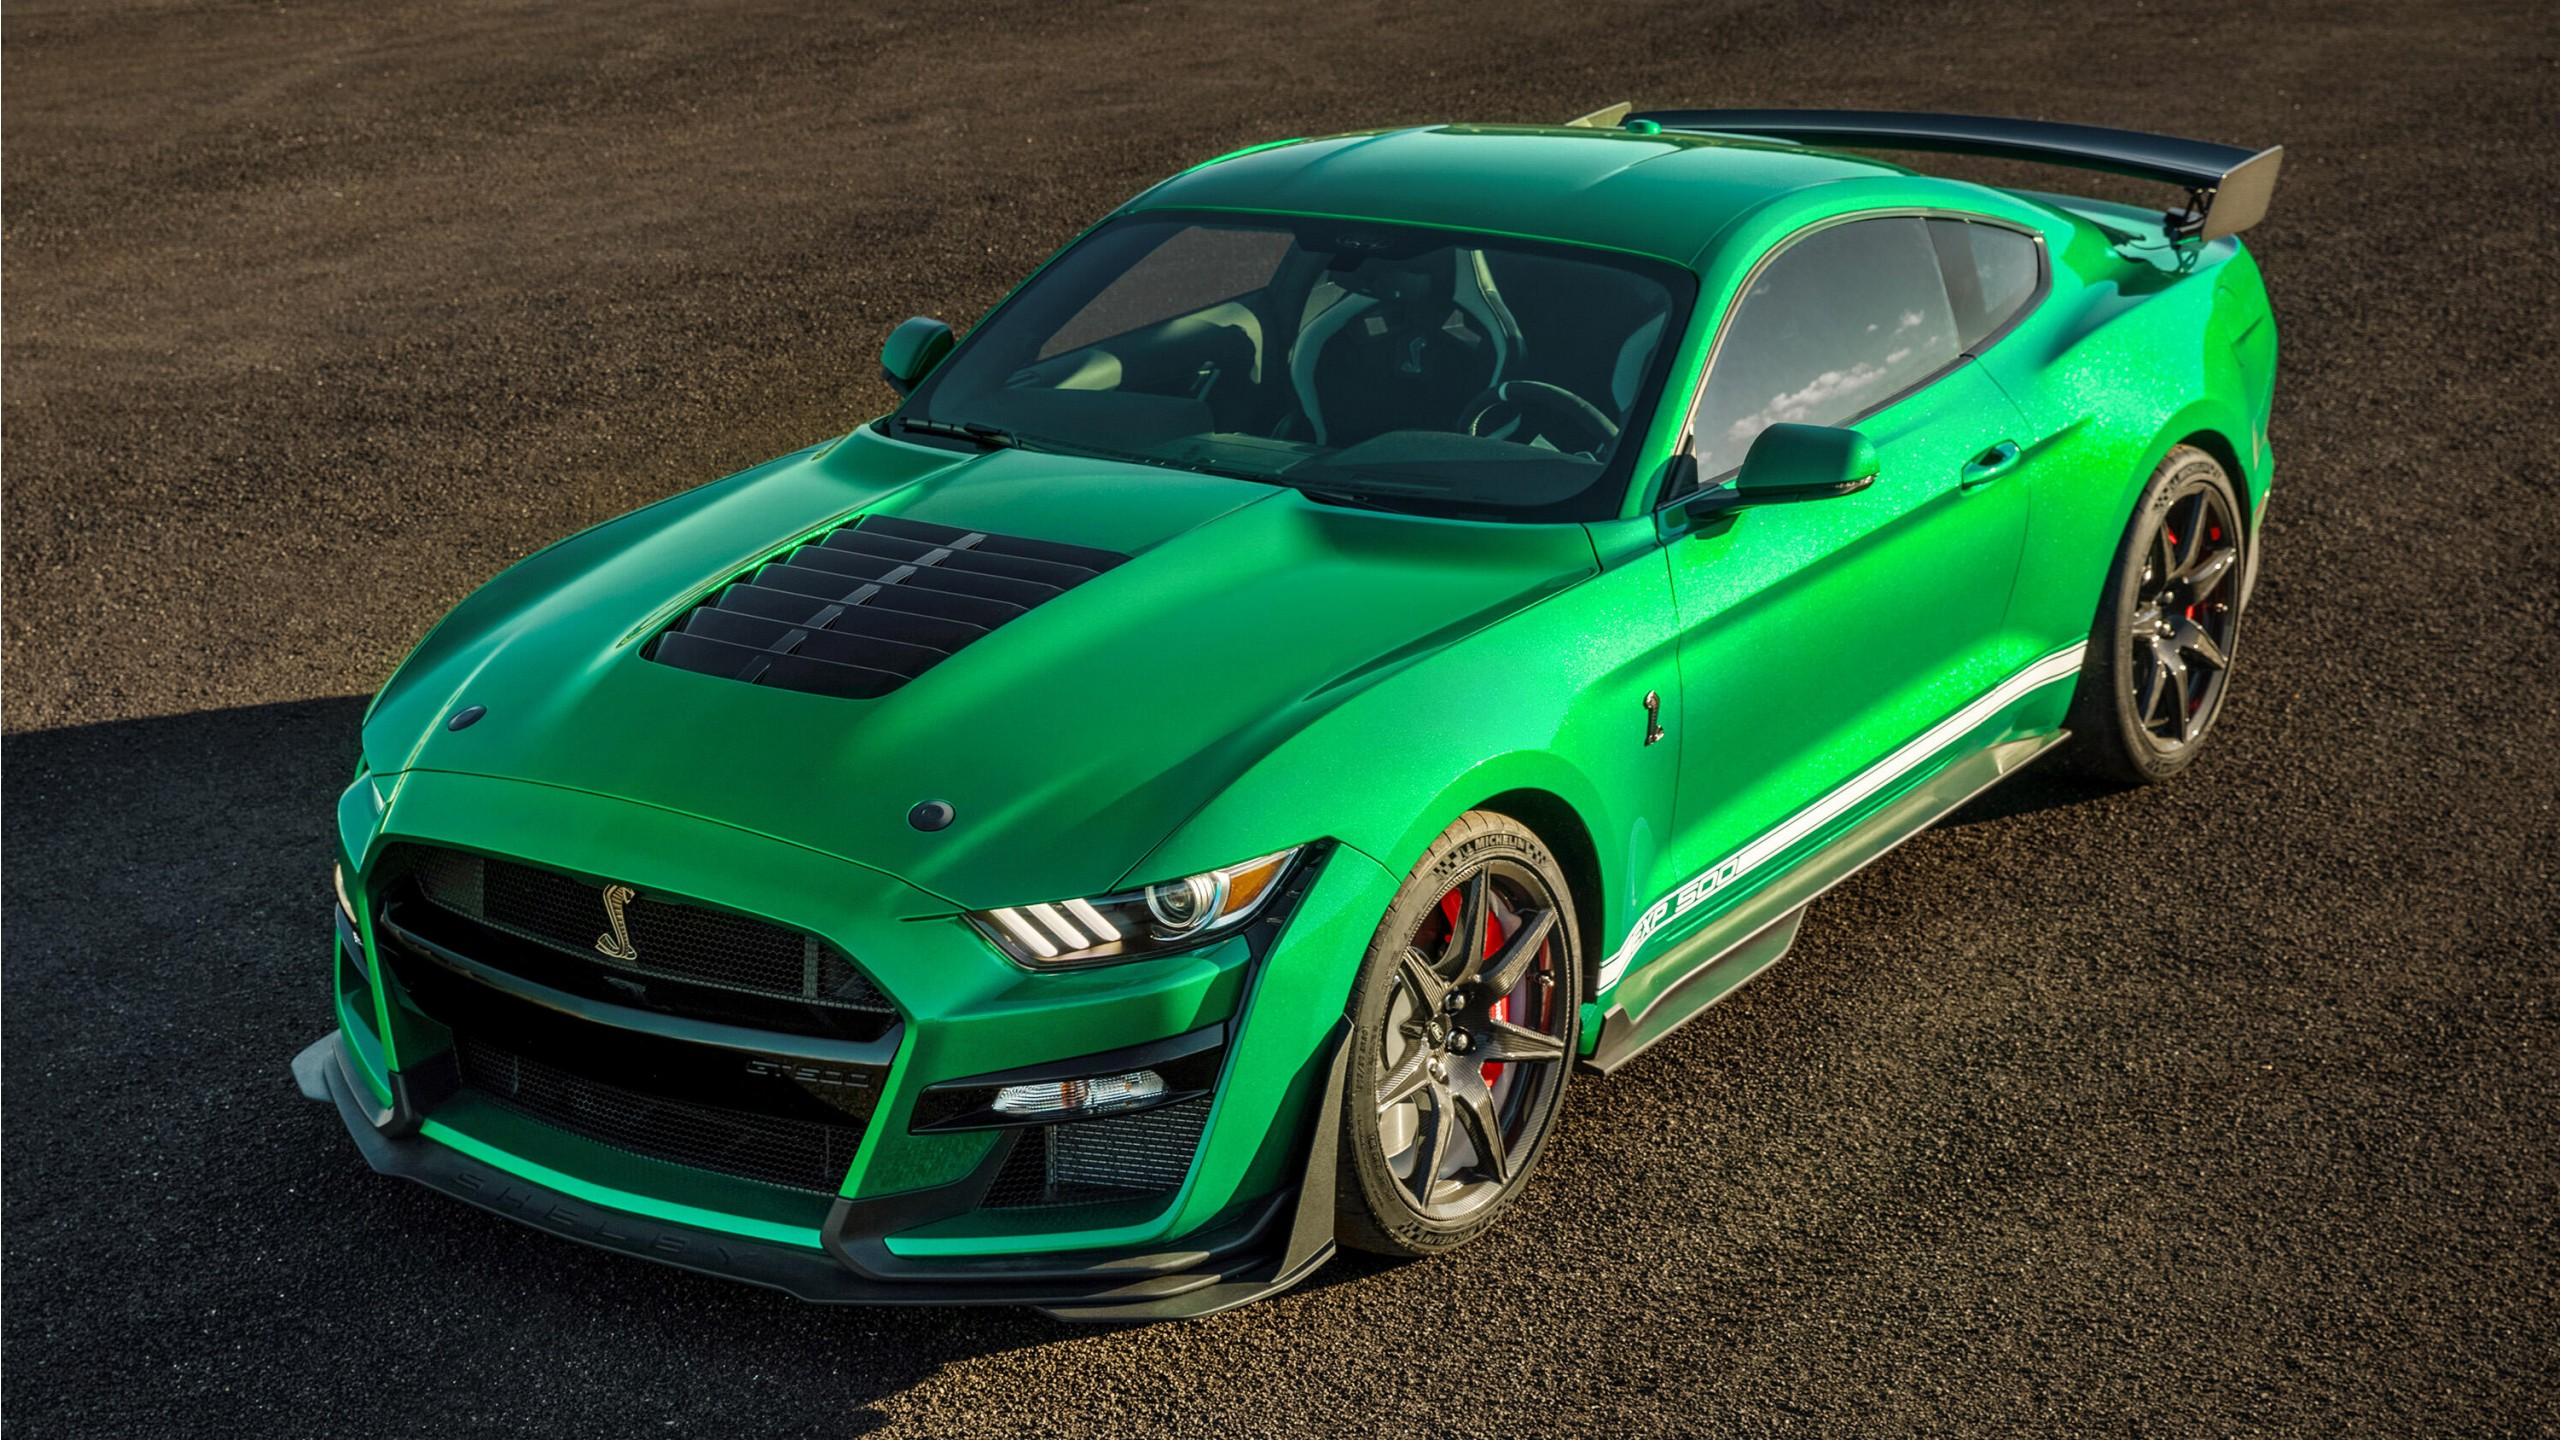 2020 ford mustang shelby gt500 wallpaper | hd car